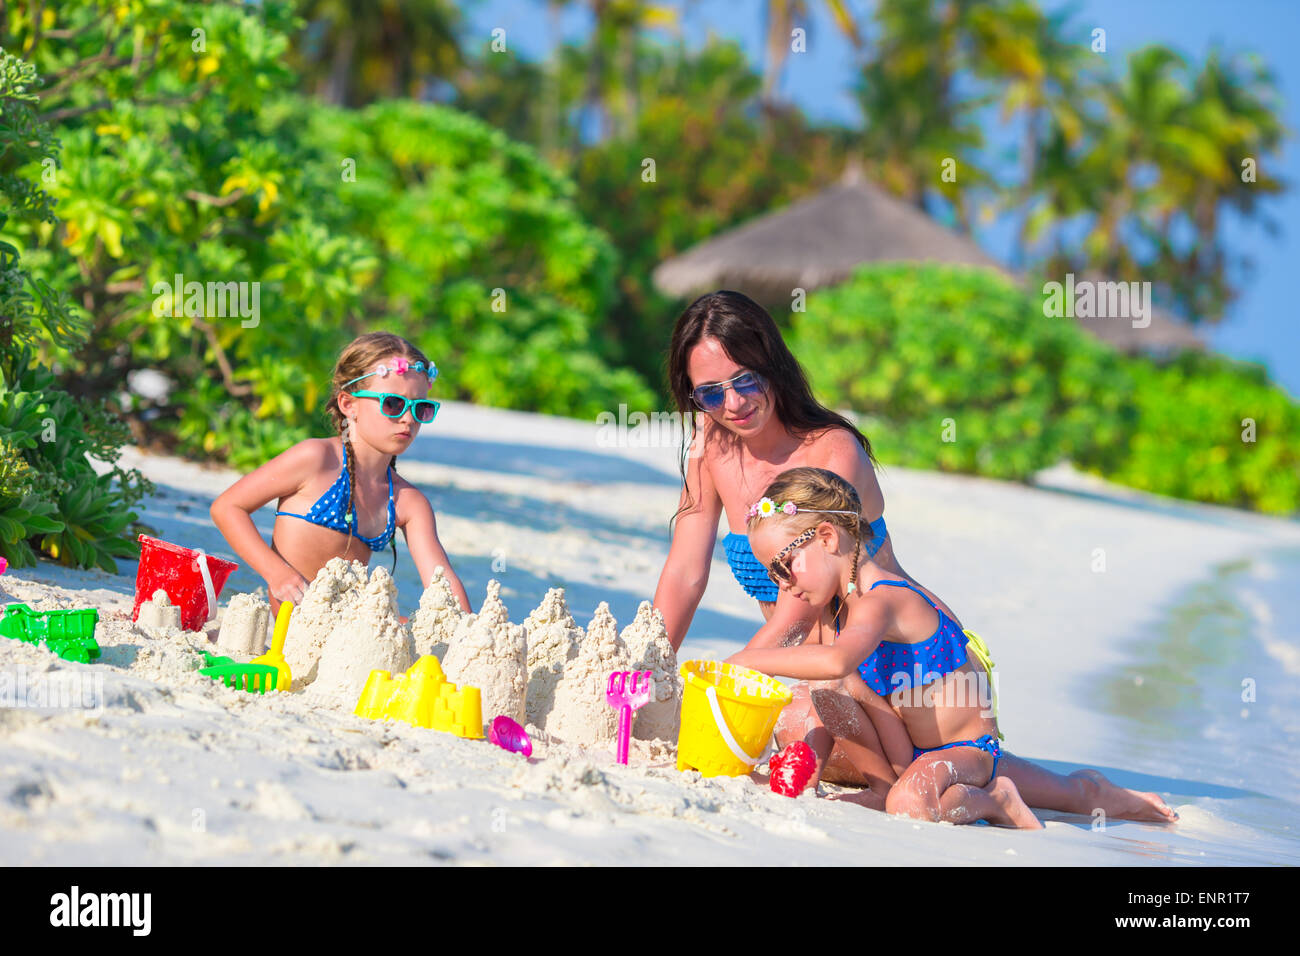 Beach Toys For Girls : Little girls and happy mother playing with beach toys on